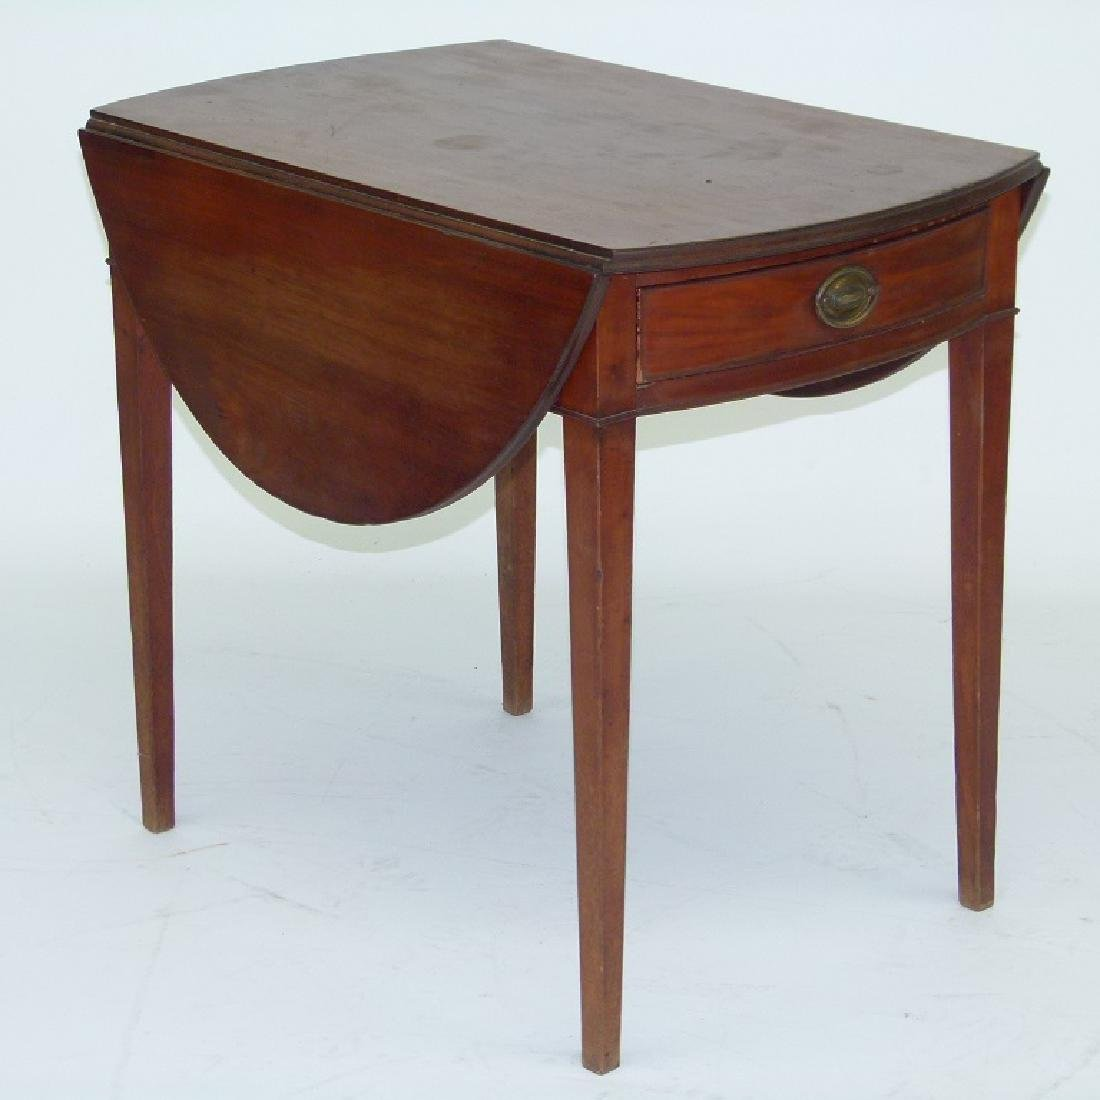 FORMAL HEPPLEWHITE MAHOGANY PEMBROKE TABLE